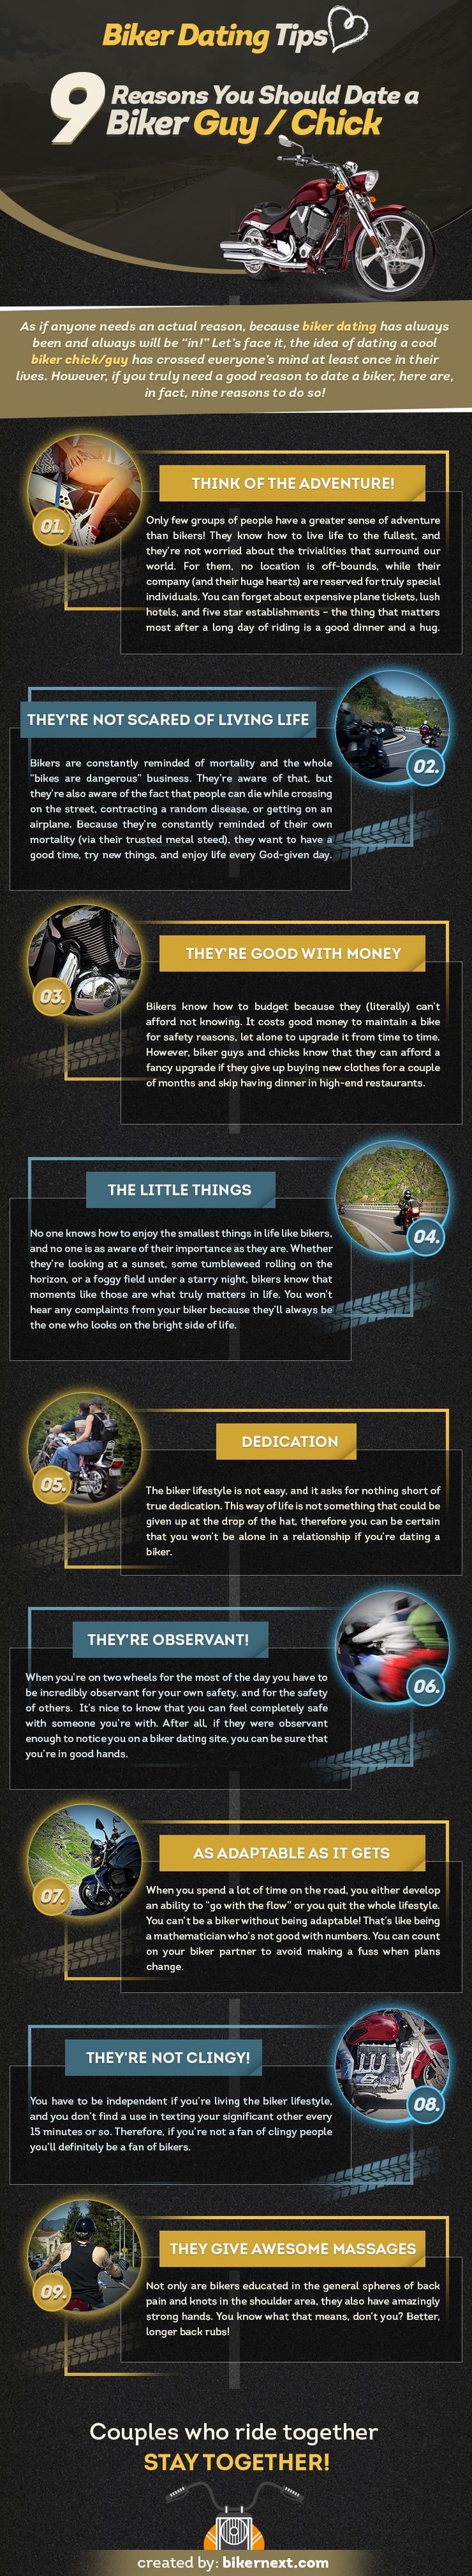 """Biker Dating Tips: 9 Reasons You Should Date a Biker Guy/Chick [INFOFGRAPHIC] As if anyone needs an actual reason, because biker dating has always been and always will be """"in!"""" Let's face it, the idea of dating a cool biker chick/guy has crossed everyone's mind at least once in their lives. However, if you truly need a good reason to date a biker, here are, in fact, nine reasons to do so!"""